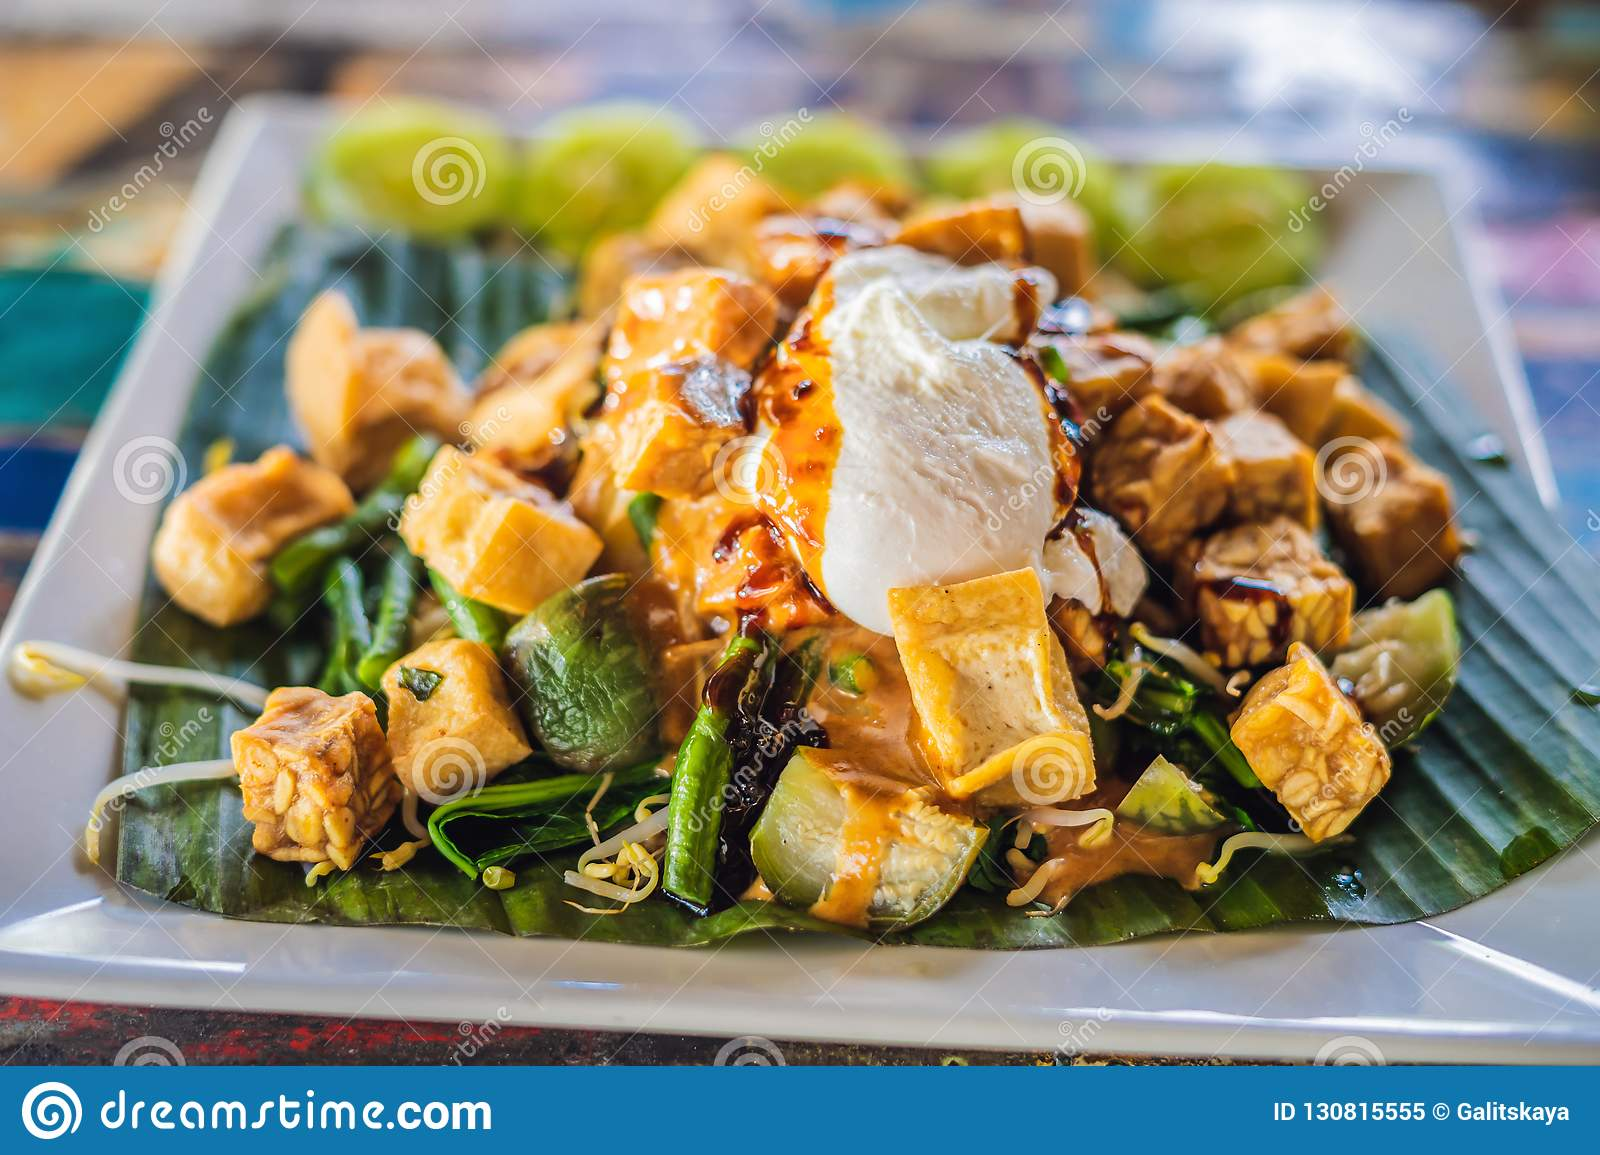 Gado Gado Indonesian Salad Served With Peanut Sauce Ingredients Tofu Spinach String Beans Soy Sprouts Potatoes Cucumber And Stock Image Image Of Famous Fried 130815555